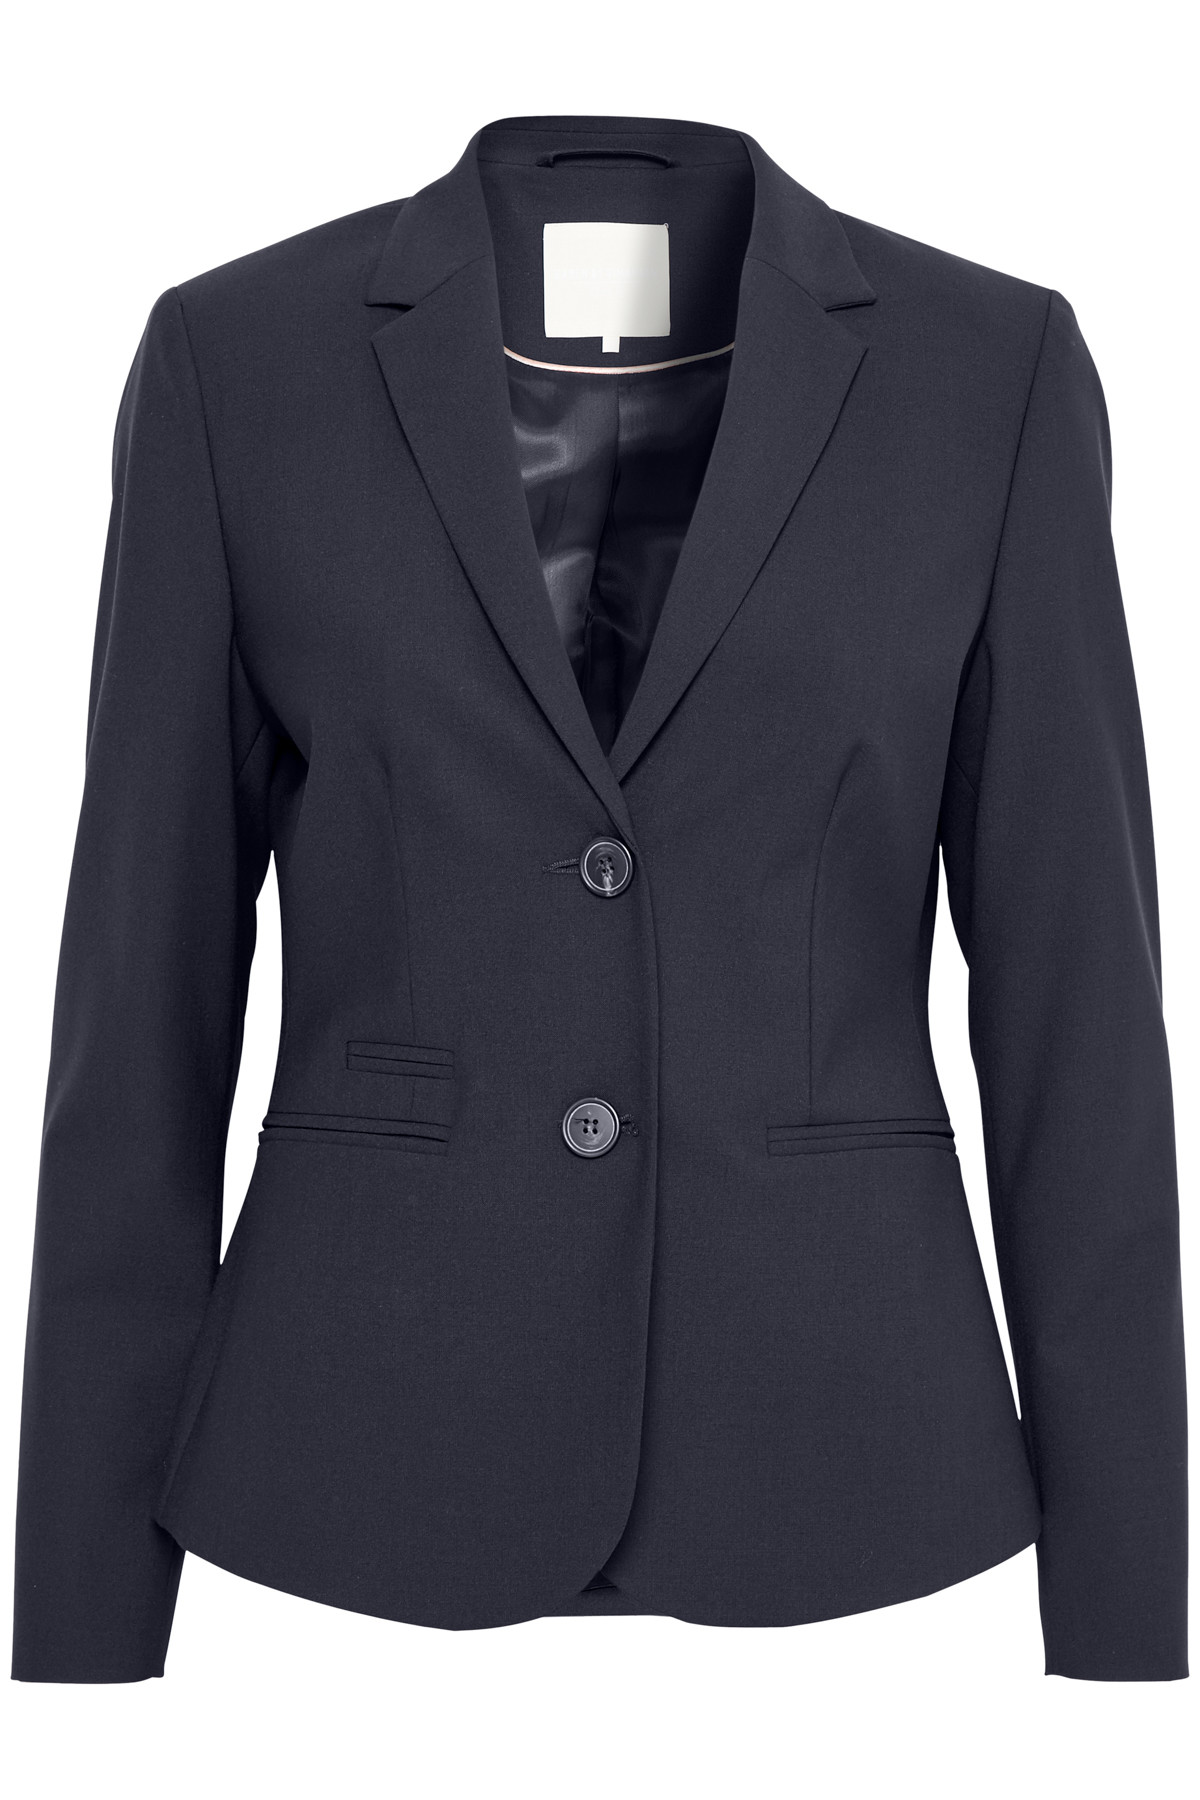 Image of   KAREN BY SIMONSEN SYDNEY BLAZER 10102001 D (Dark Blue 40520, 40)